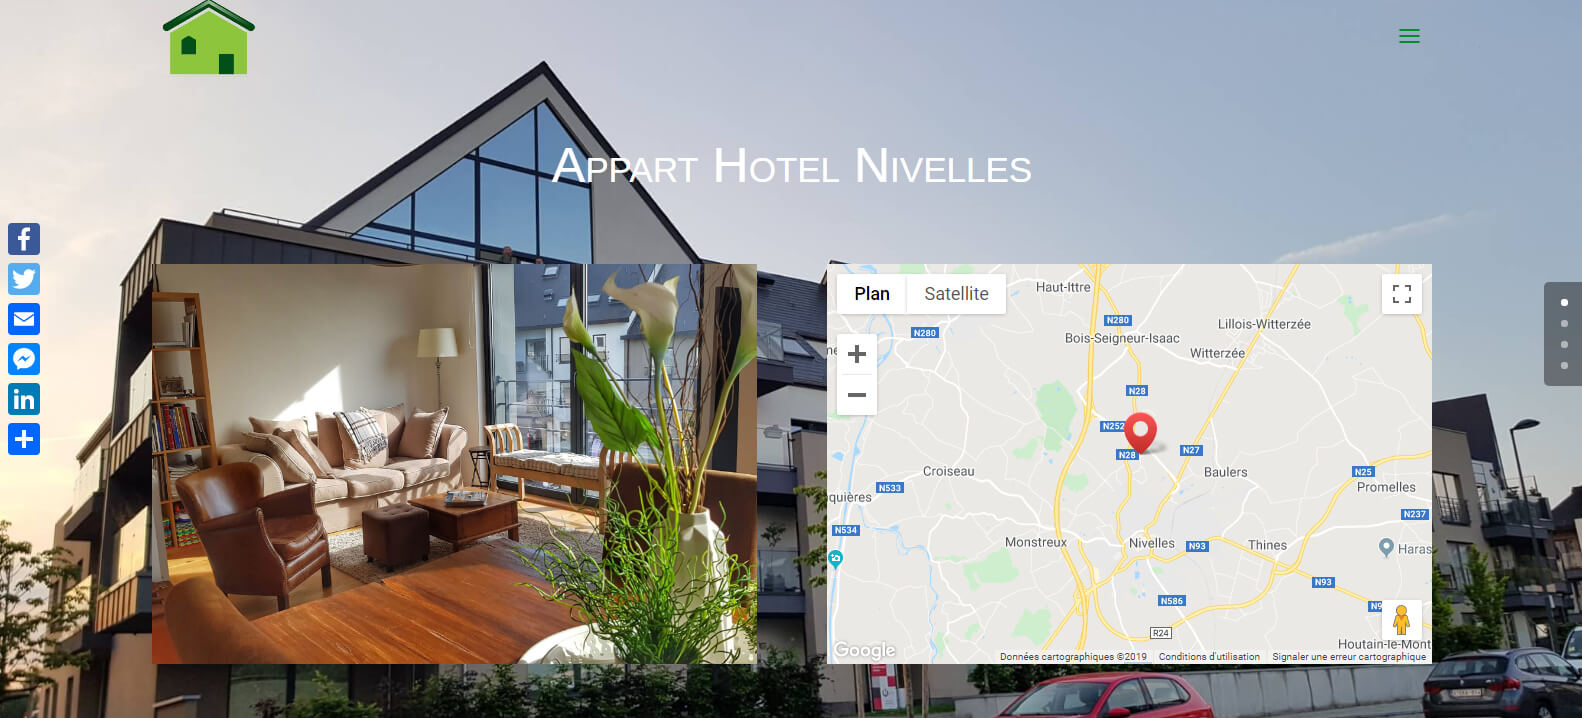 Appart Hotel